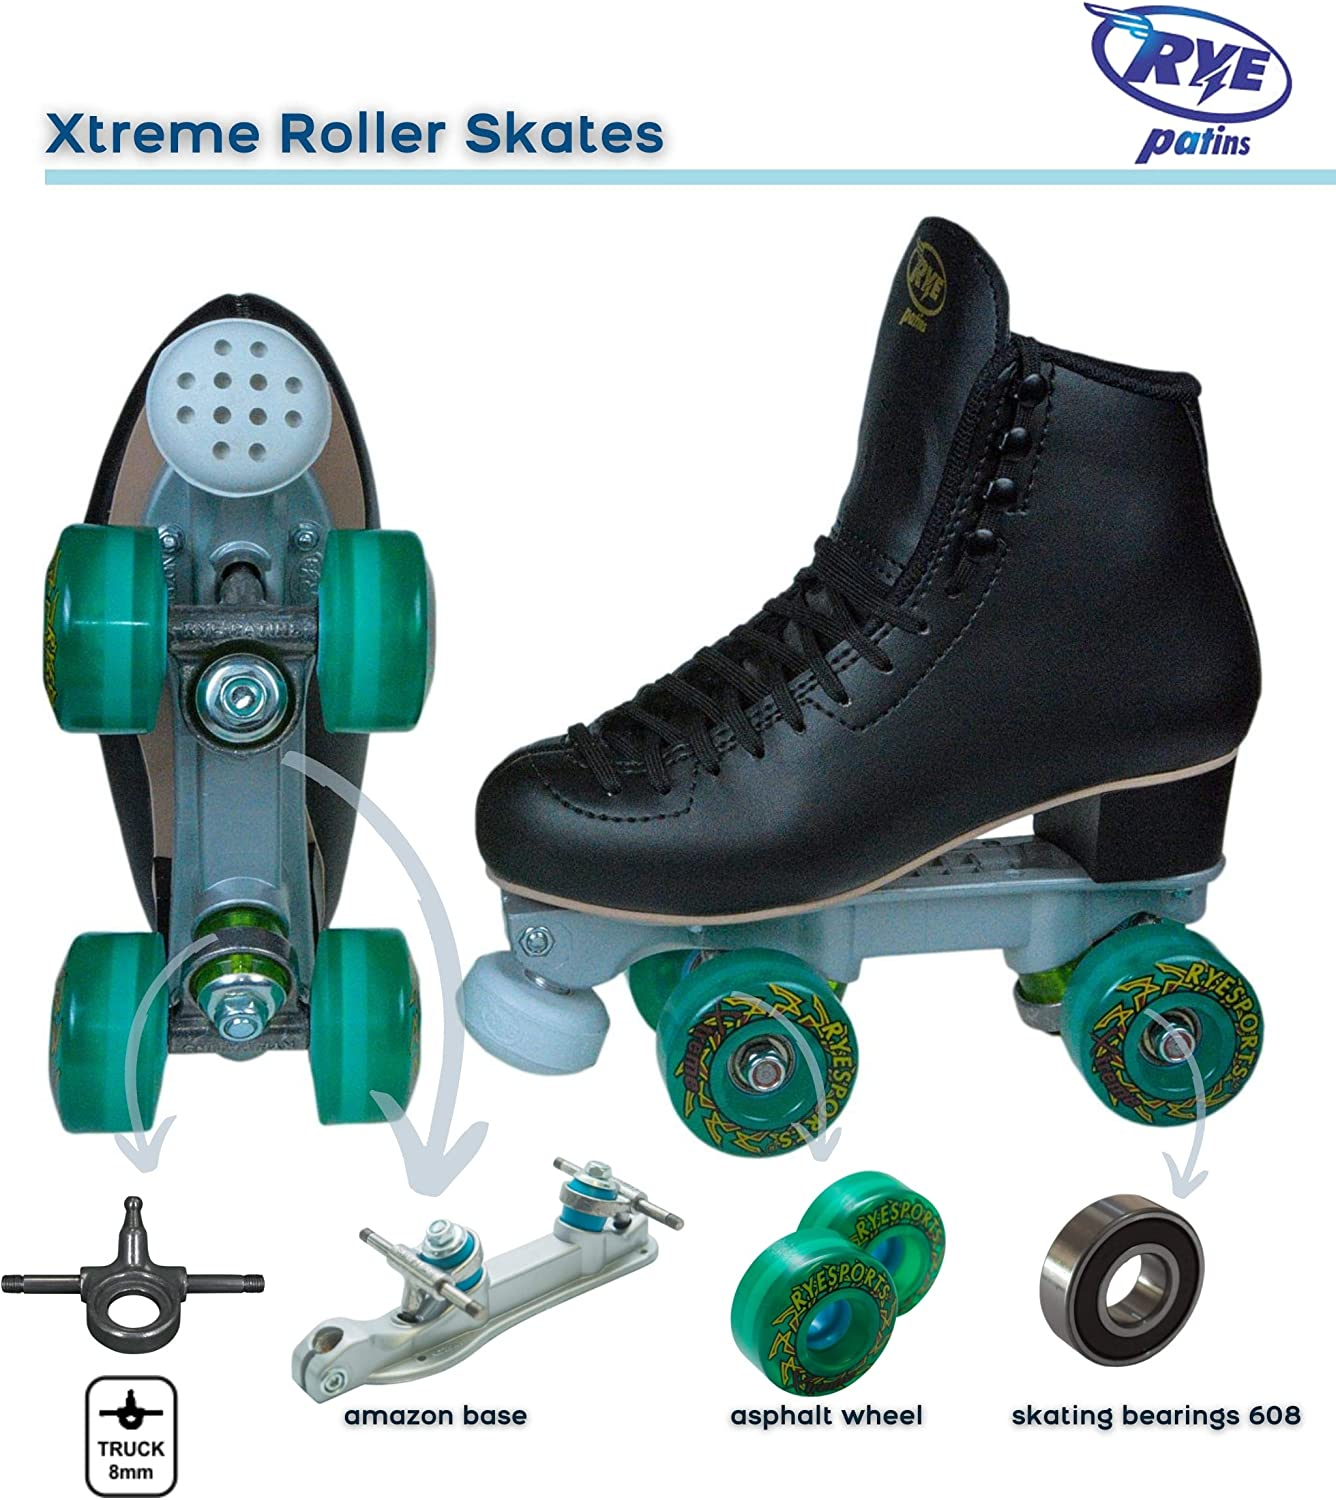 Soft Wheels for asphalts Xtreme Model Rye Patins Outdoor Roller Skates with high Boots for Teens and Adults